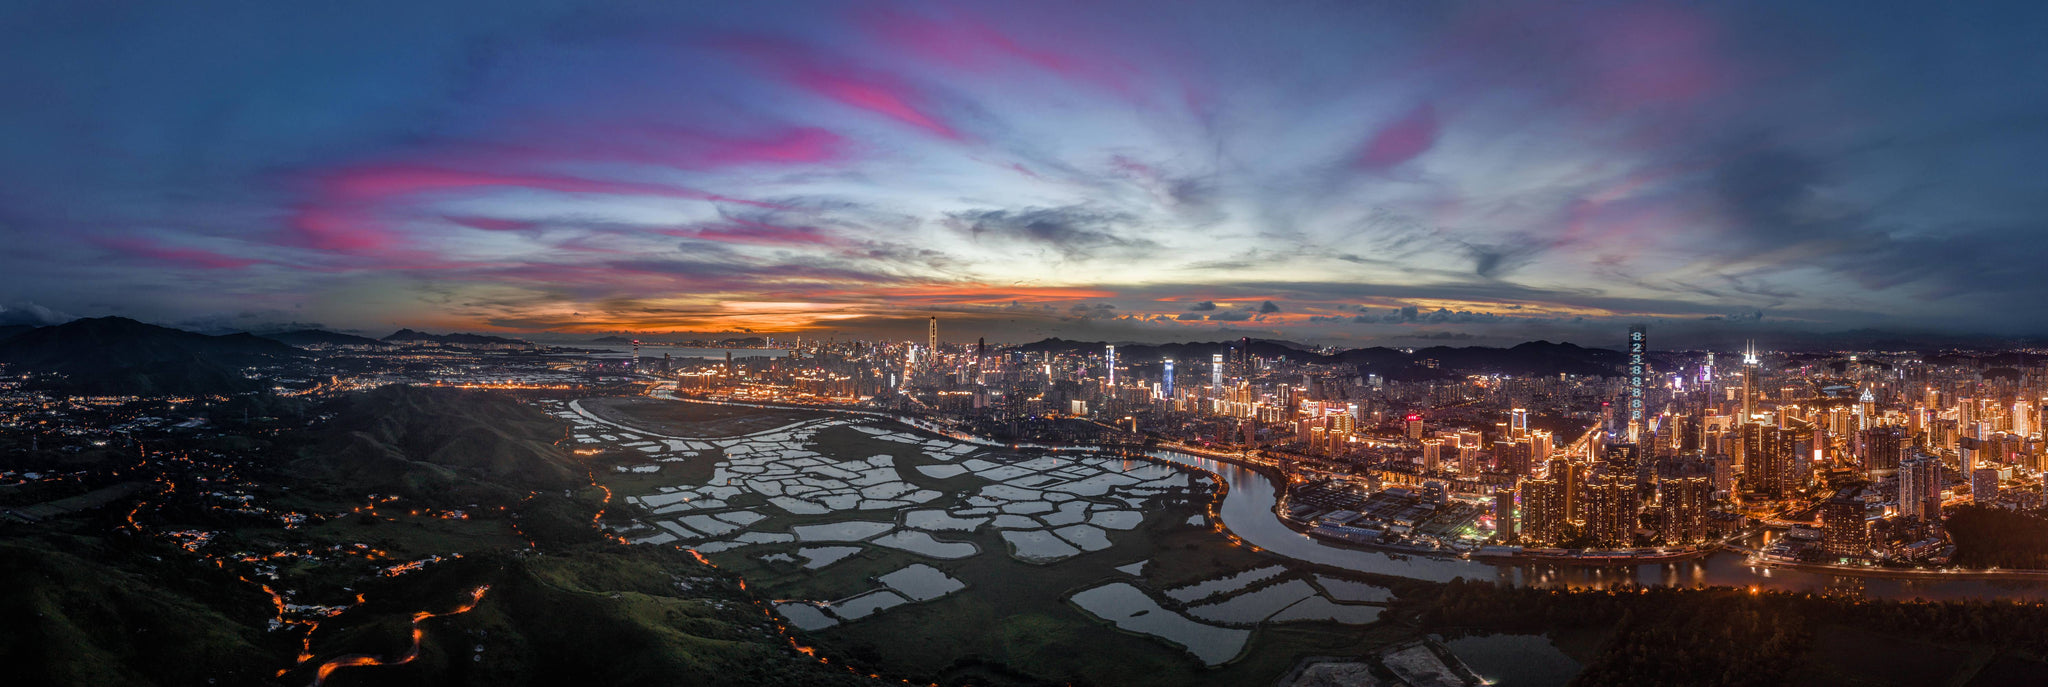 Sunset over Shenzhen by Blair Sugarman - Print